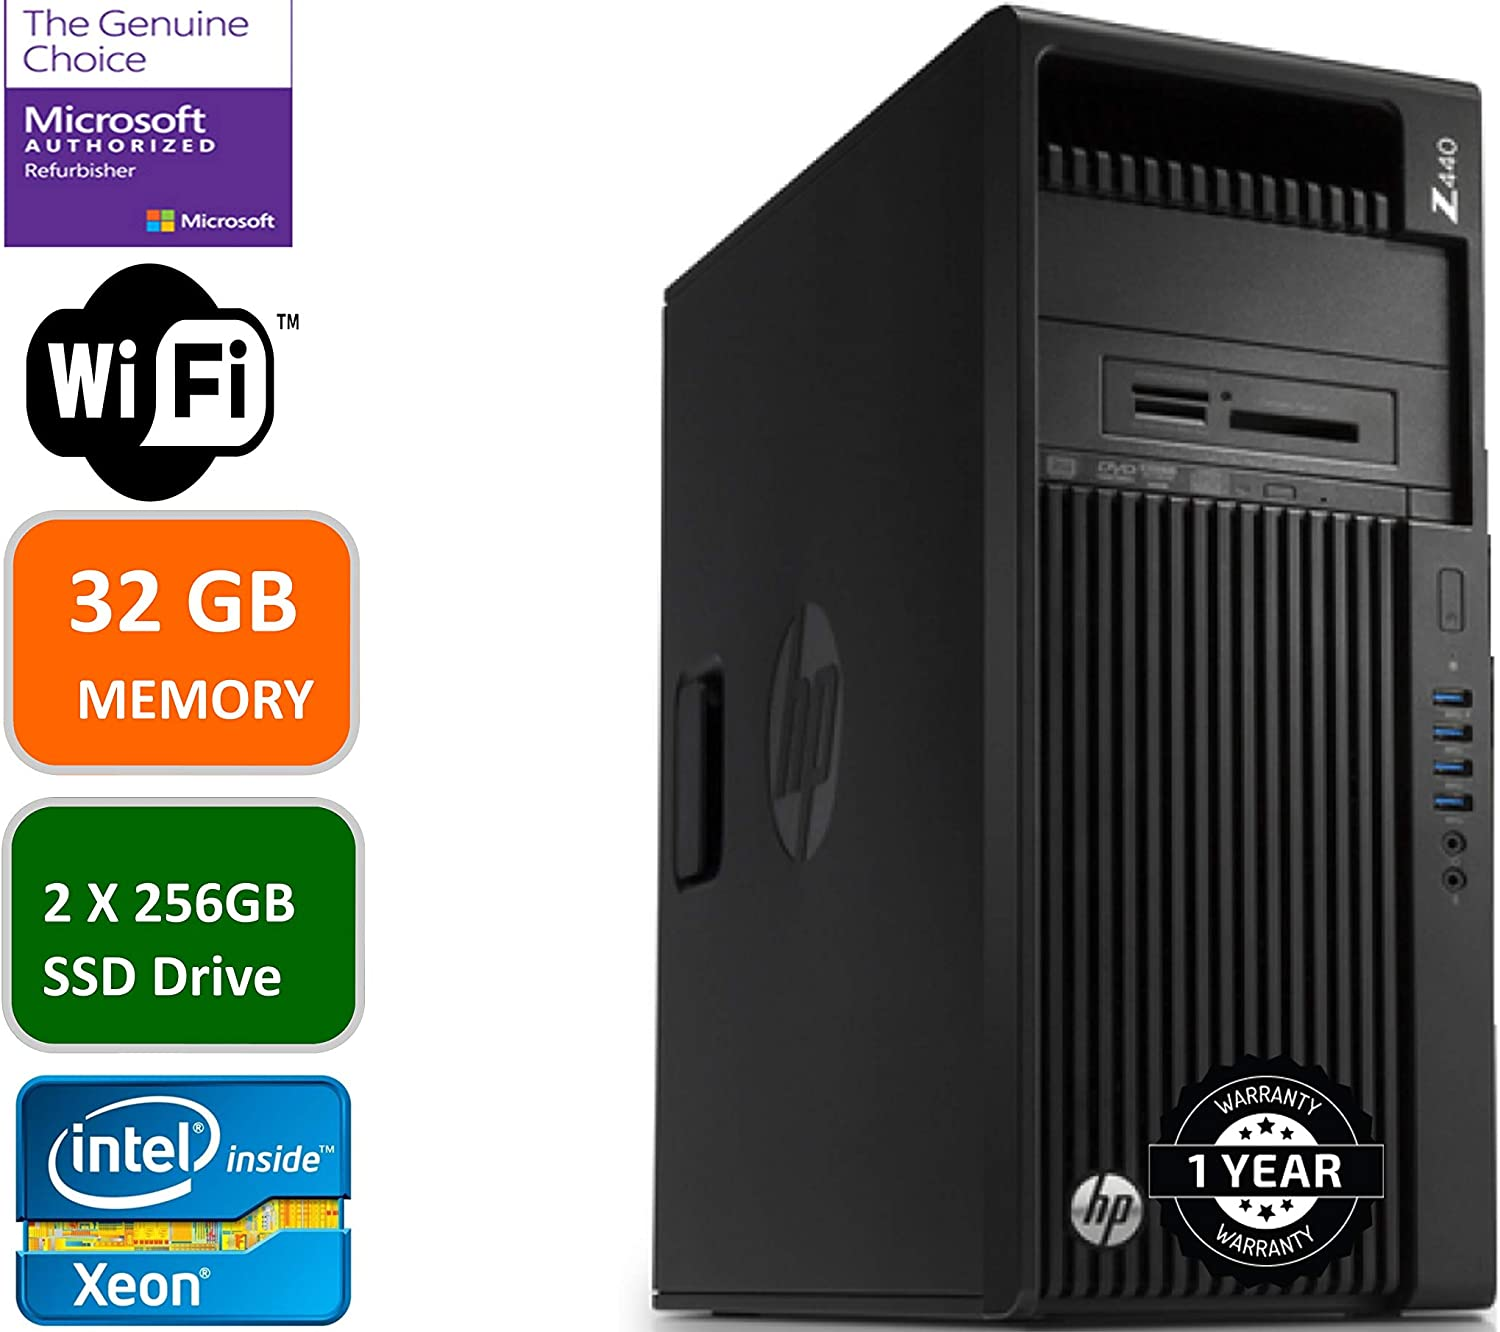 HP Z440 Business Workstation Desktop PC: Intel Xeon E5-1620-3.5 GHZ, 2 X 256GBSSD HDD, 32GB Memory, NVIDIA Quadro K2200, DVD-RW, Windows 10 Pro (Renewed)